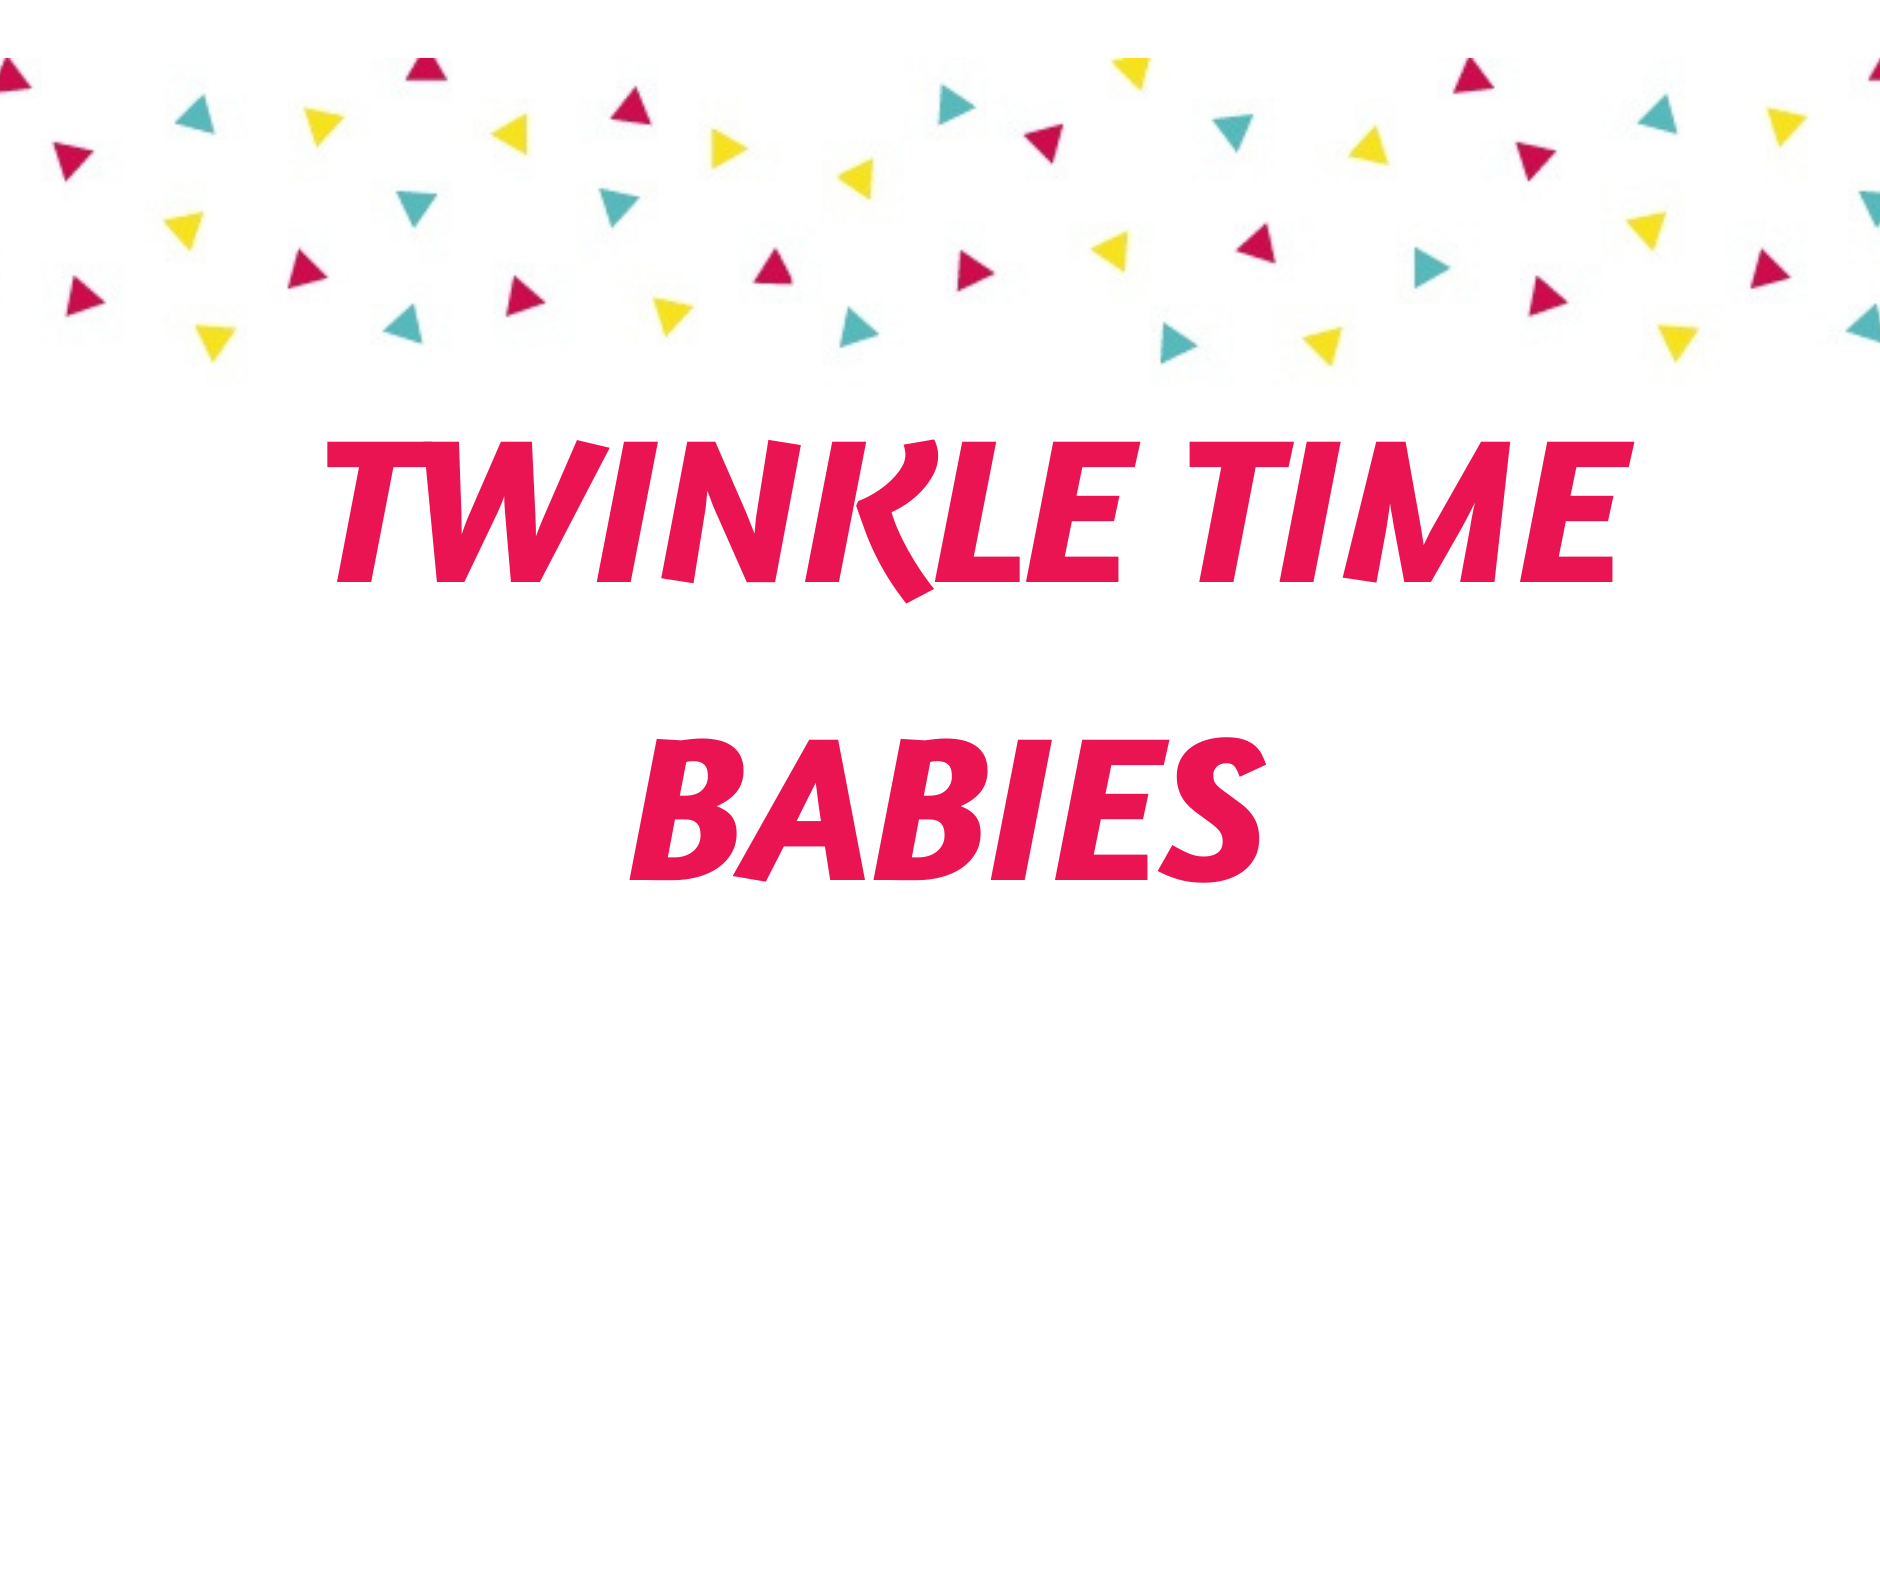 Twinkle Time - Tuesday's